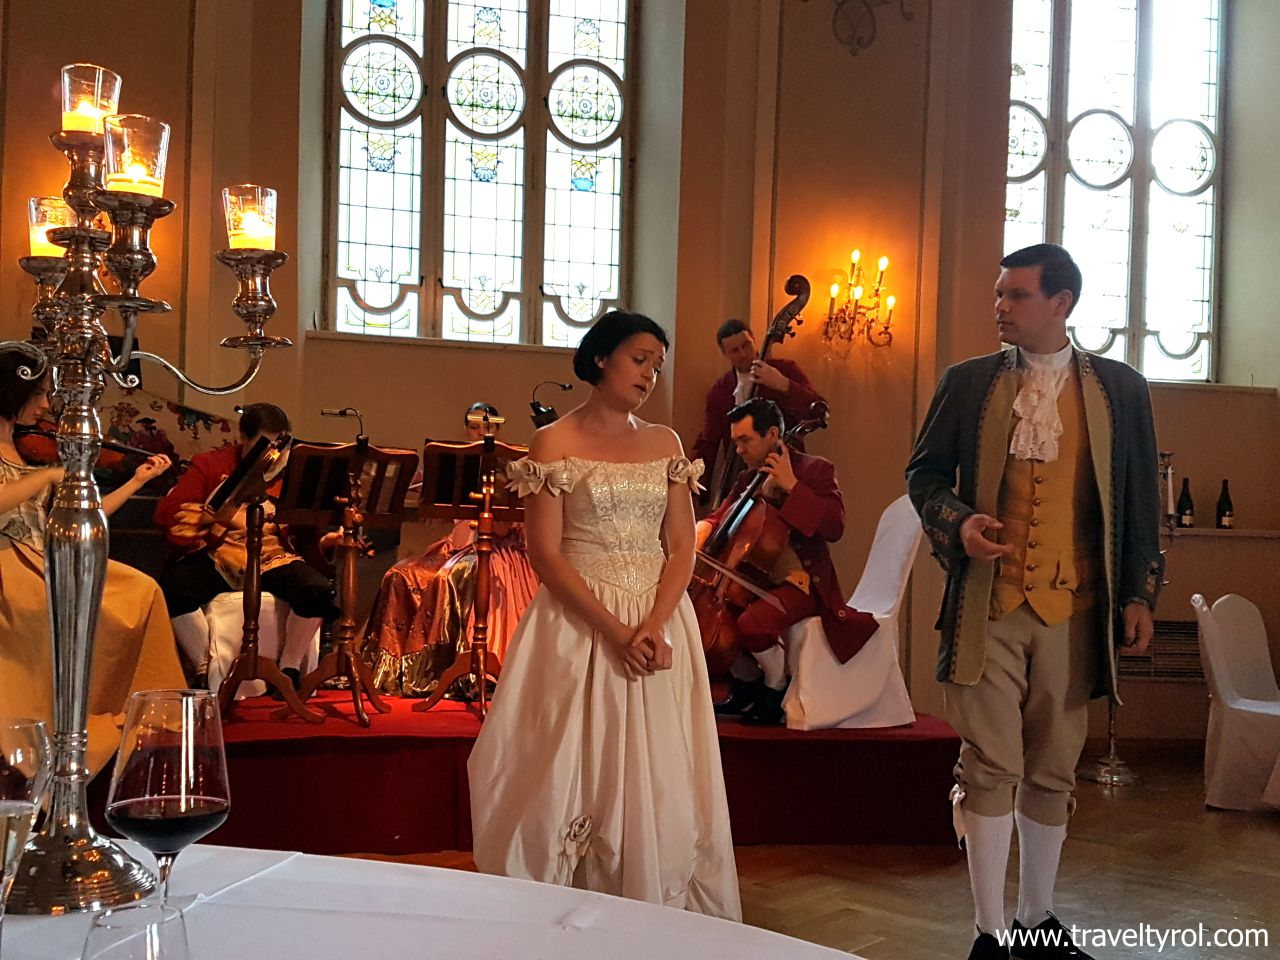 Dressing A Composer Mozart Dinner Concert In Salzburg Honest Review Travel Tyrol